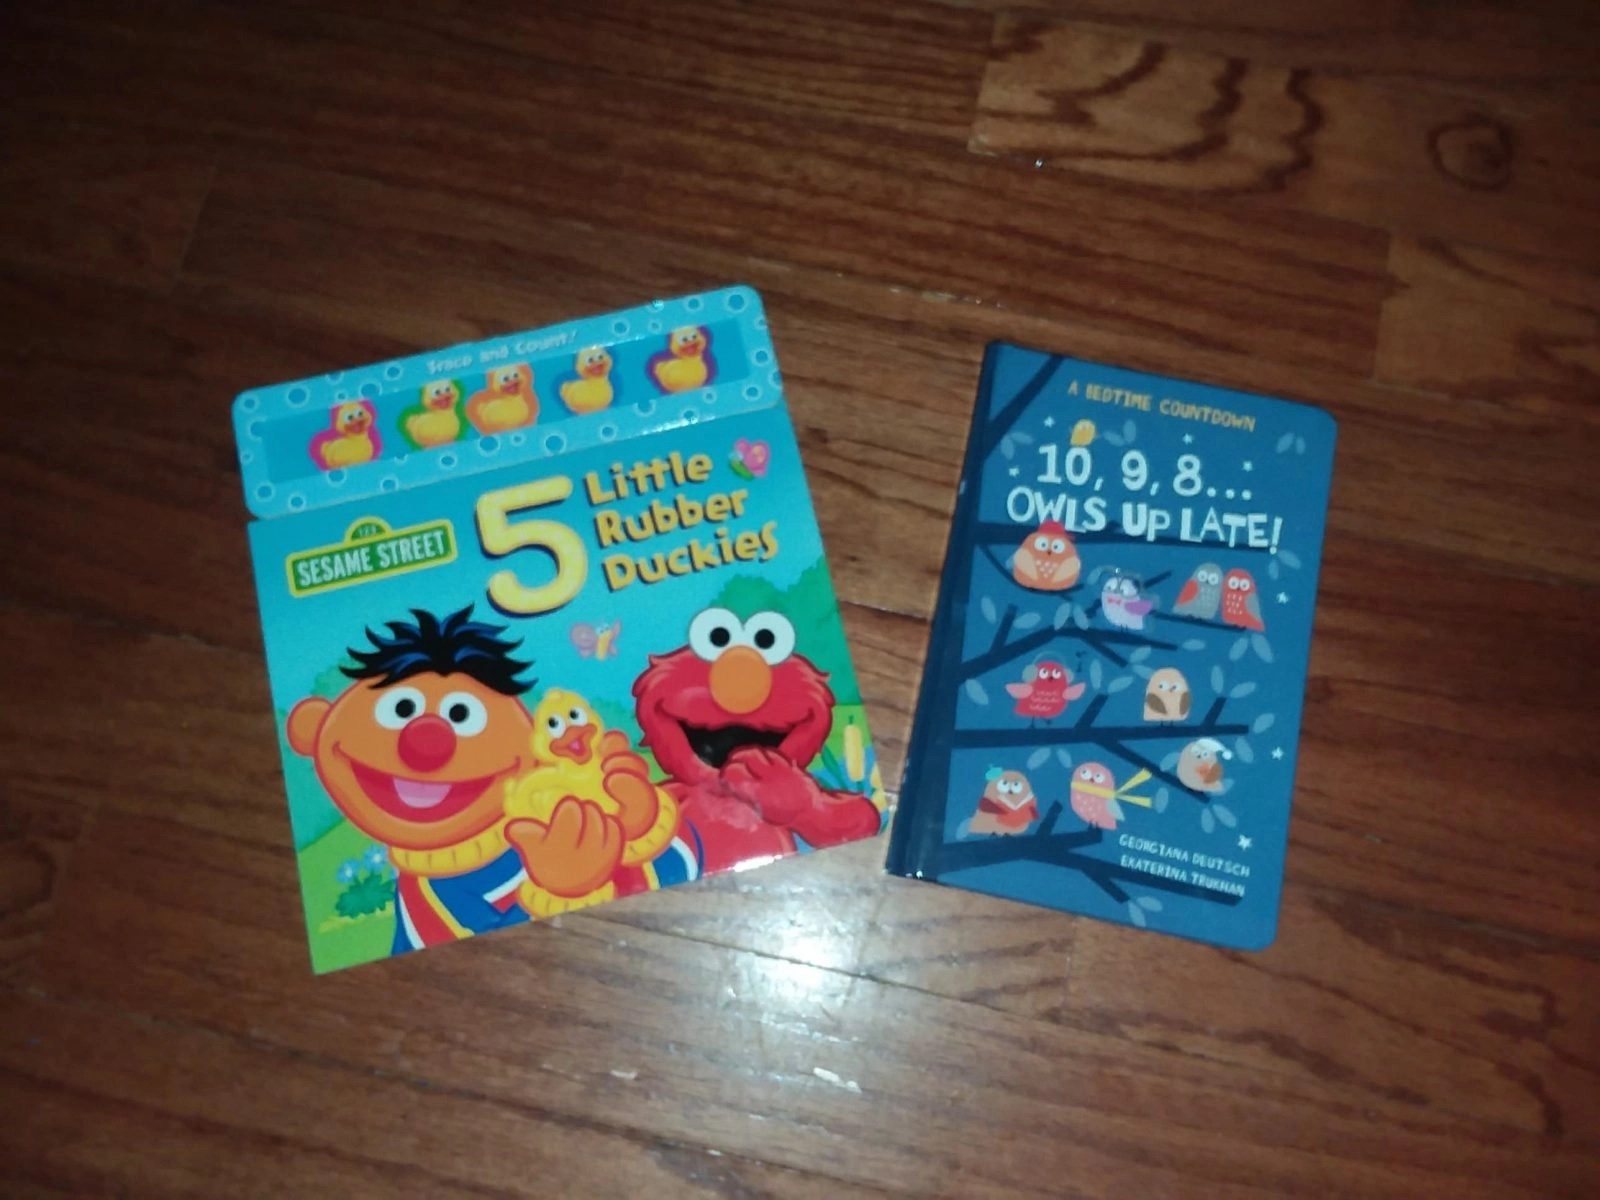 Sesame Street 5 Little Rubber Duckies and 10 9 8 Owls Up Late